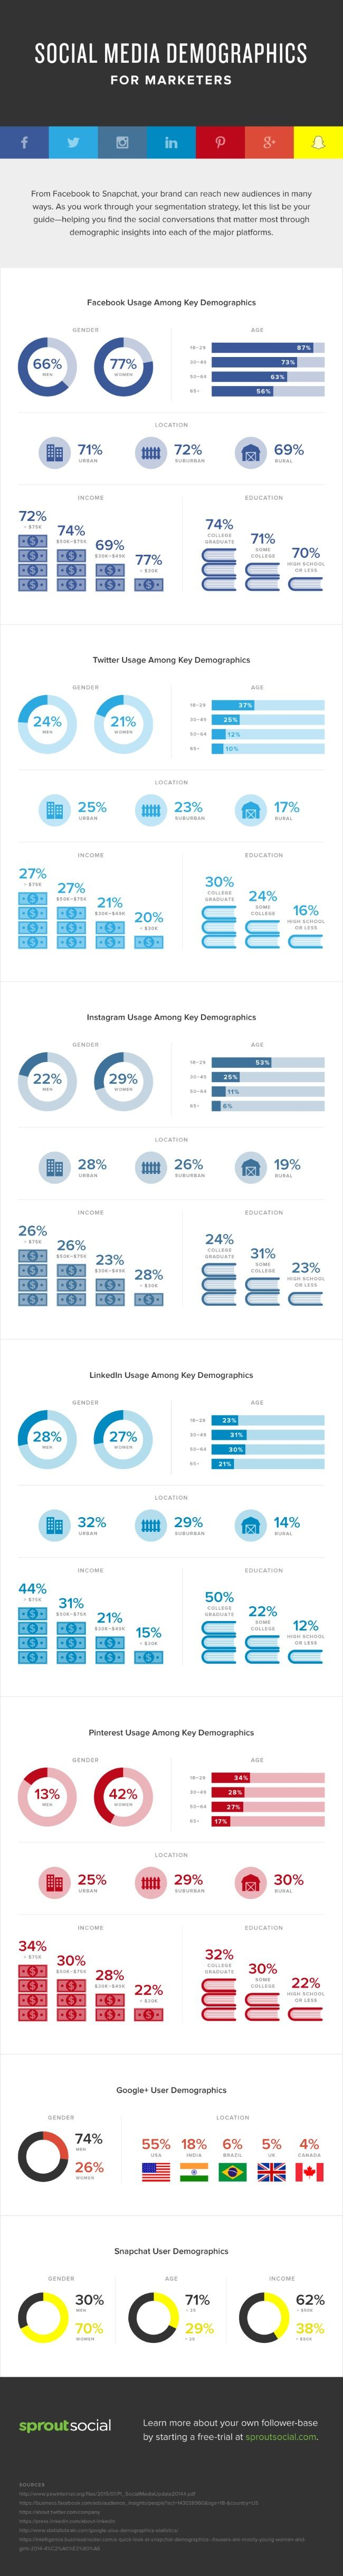 "ADVERTISING/MARKETING | INFOGRAPHICS How Marketers Should Choose Social Networks (Infographic) 554 SHARES    By Guest on Aug. 26, 2015 - 9:00 AM1 Comment  MagnifyingGlassTargetAudience Having worked in social media for a number of years, I've seen a ton of different questions raised about the various strategies and best practices. But one of the most popular questions I see is, ""Which social media networks should I spend my time establishing a presence on?""  It's an extremely important…"